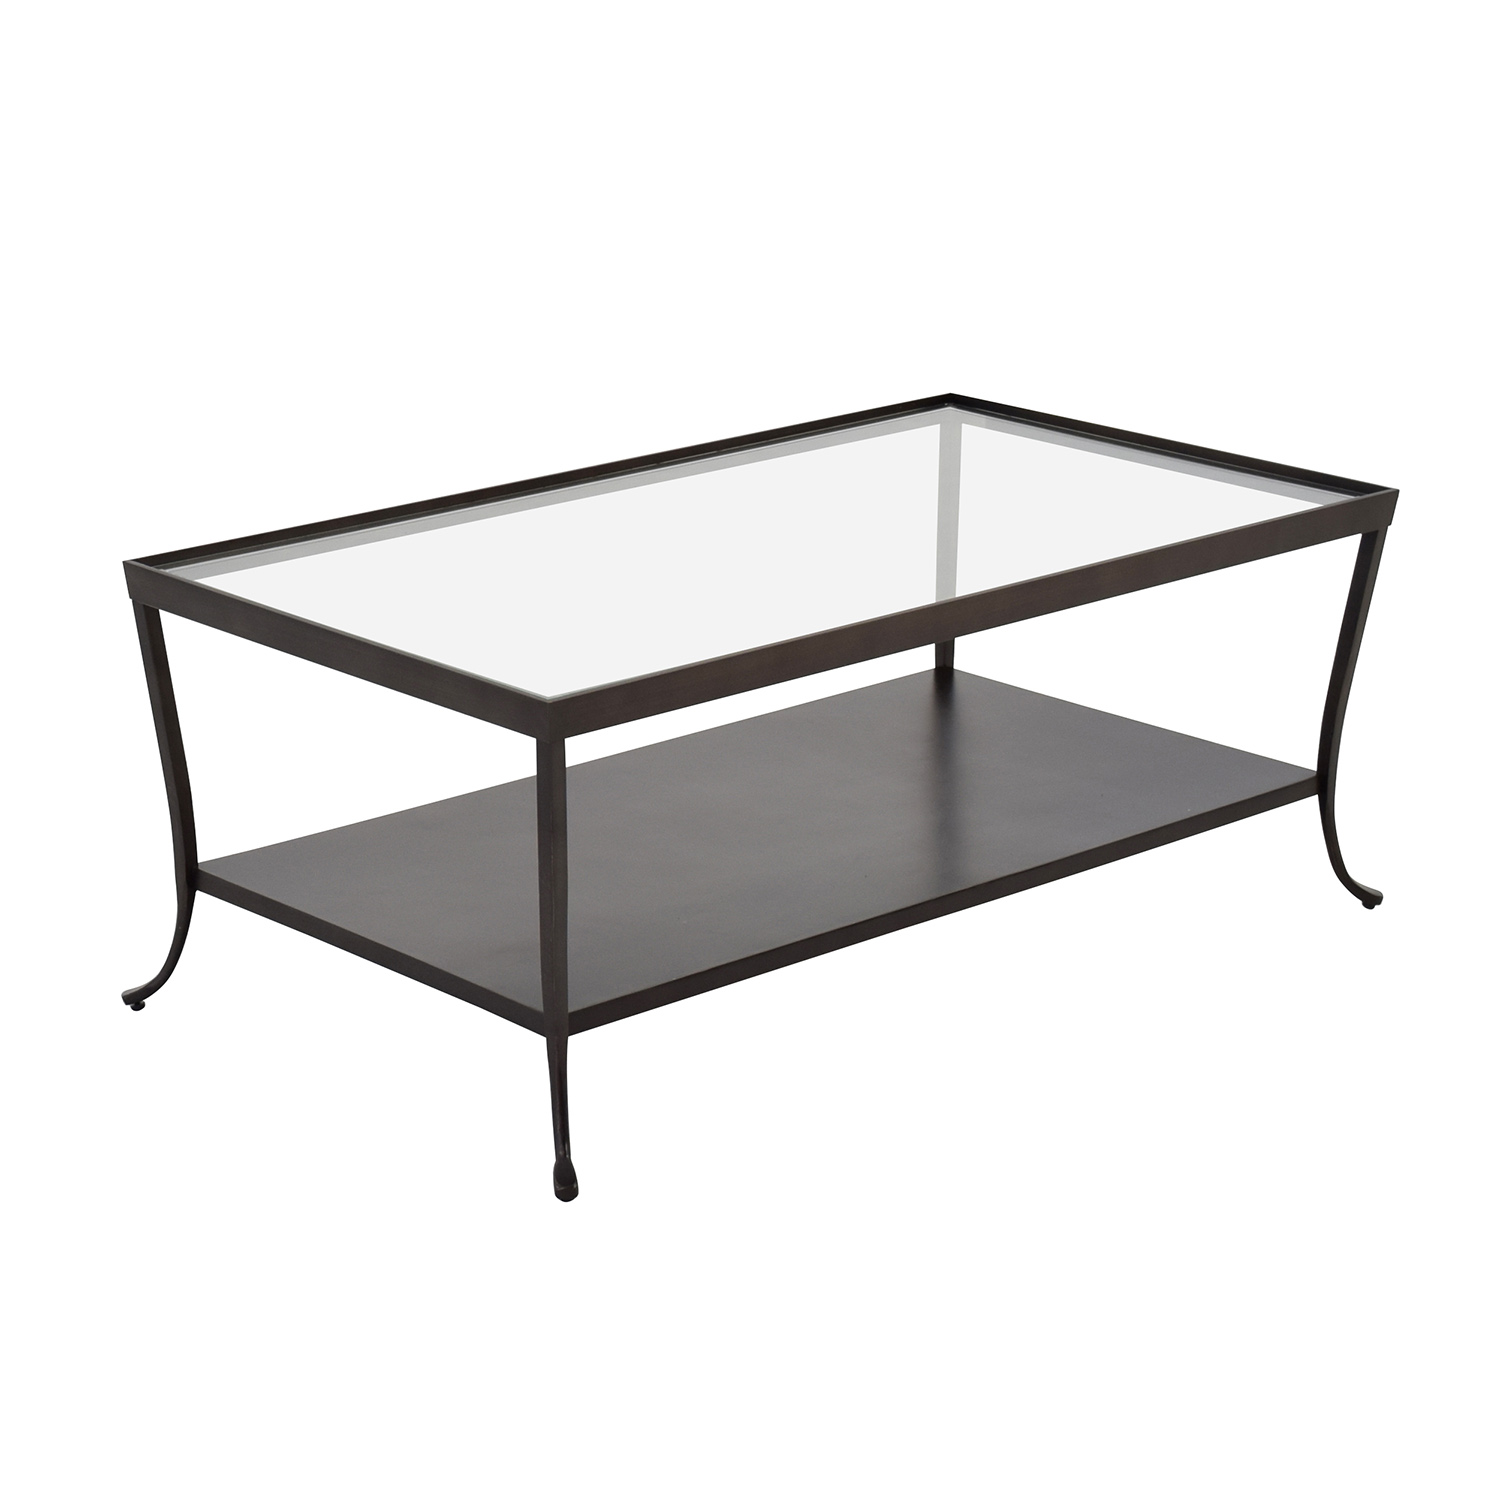 84 off metal base with glass top coffee table tables for Coffee tables glass top